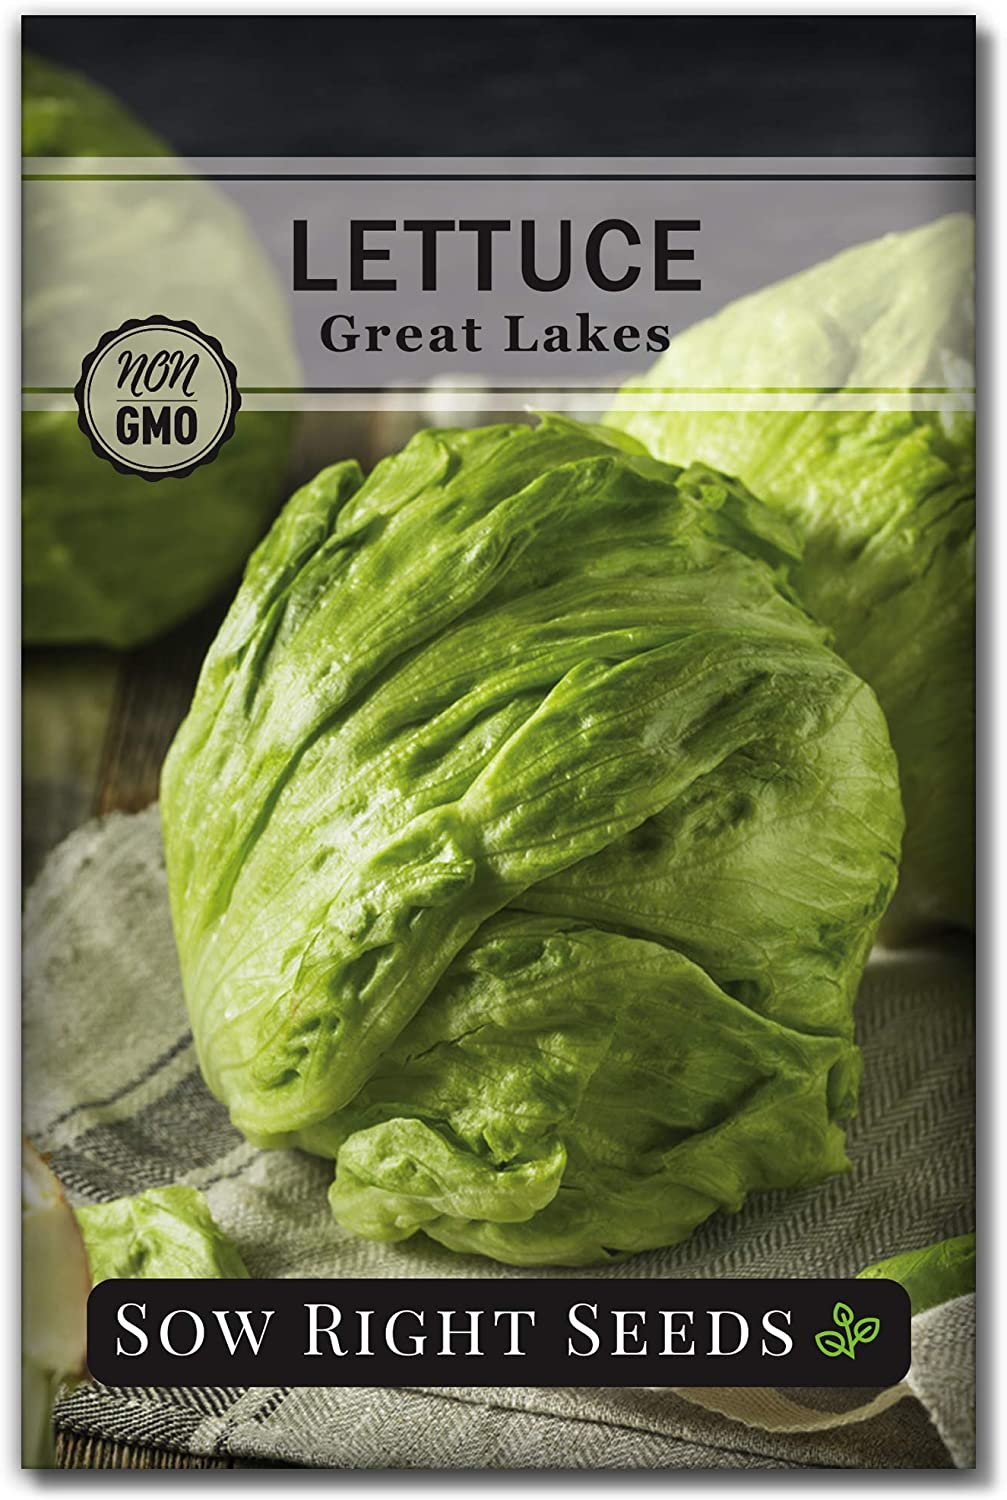 Sow Right Seeds - Great Lakes Iceburg Lettuce Seed for Planting - Non-GMO Heirloom Packet with Instructions to Plant a Home Vegetable Garden, Indoors or Outdoor; Great Gardening Gift (1)